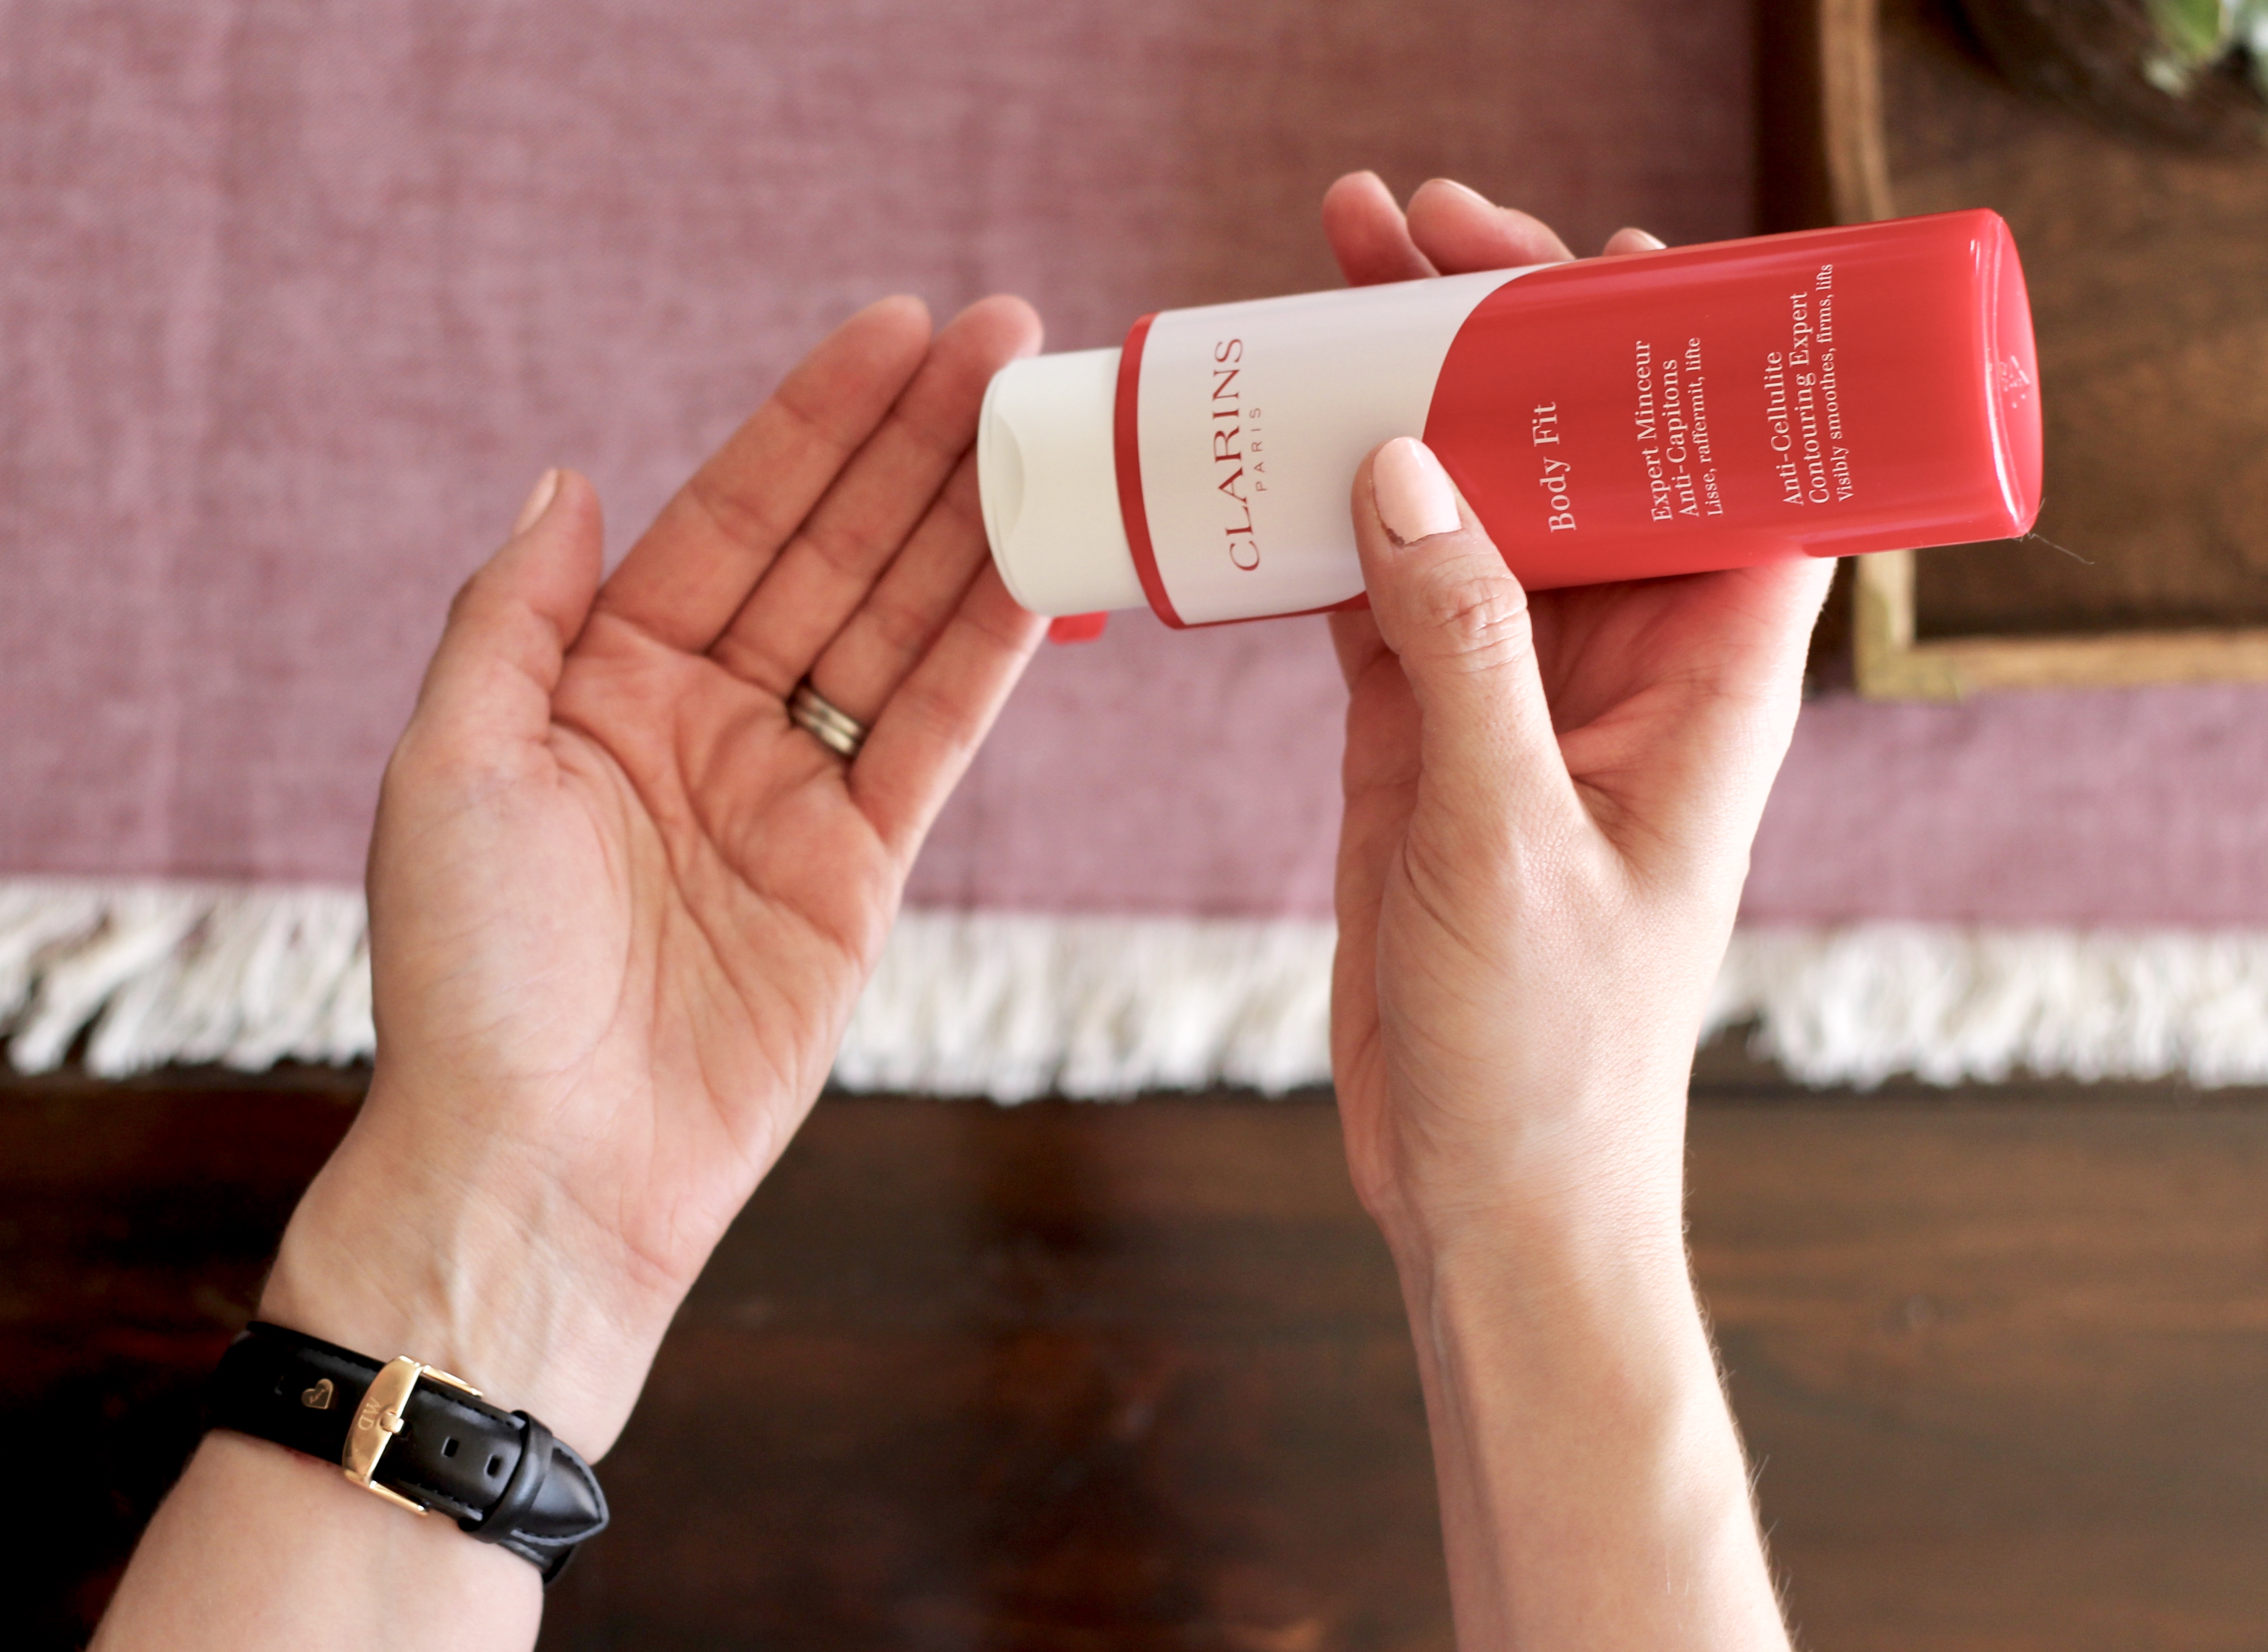 Get rid of cellulite with Clarins Body Fit Gel